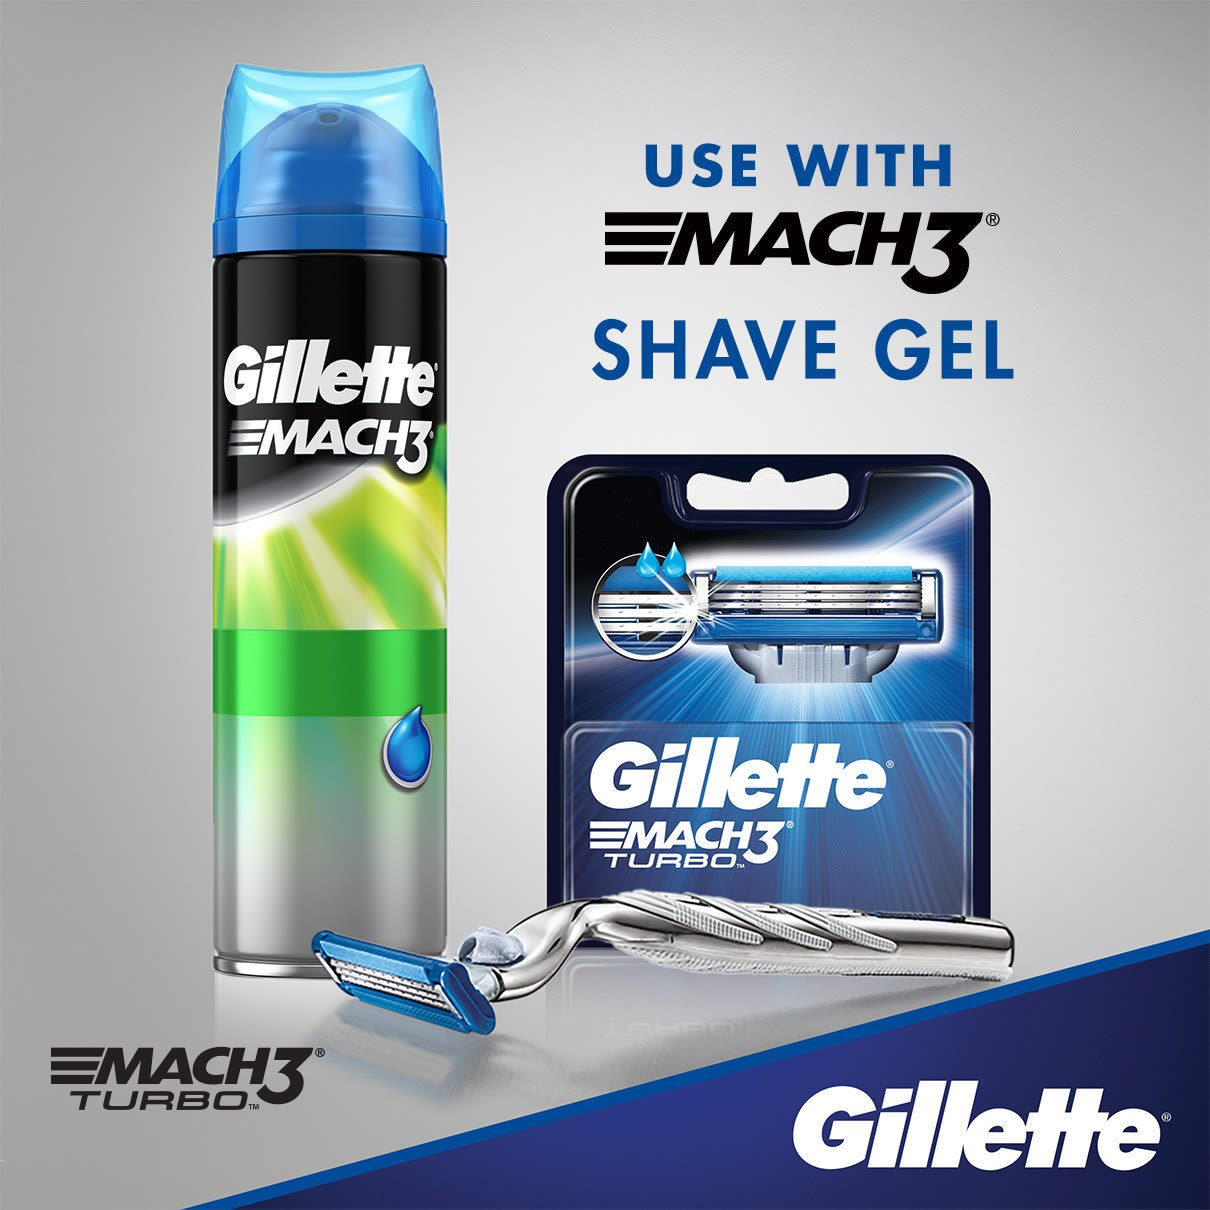 Use with Series shave gel